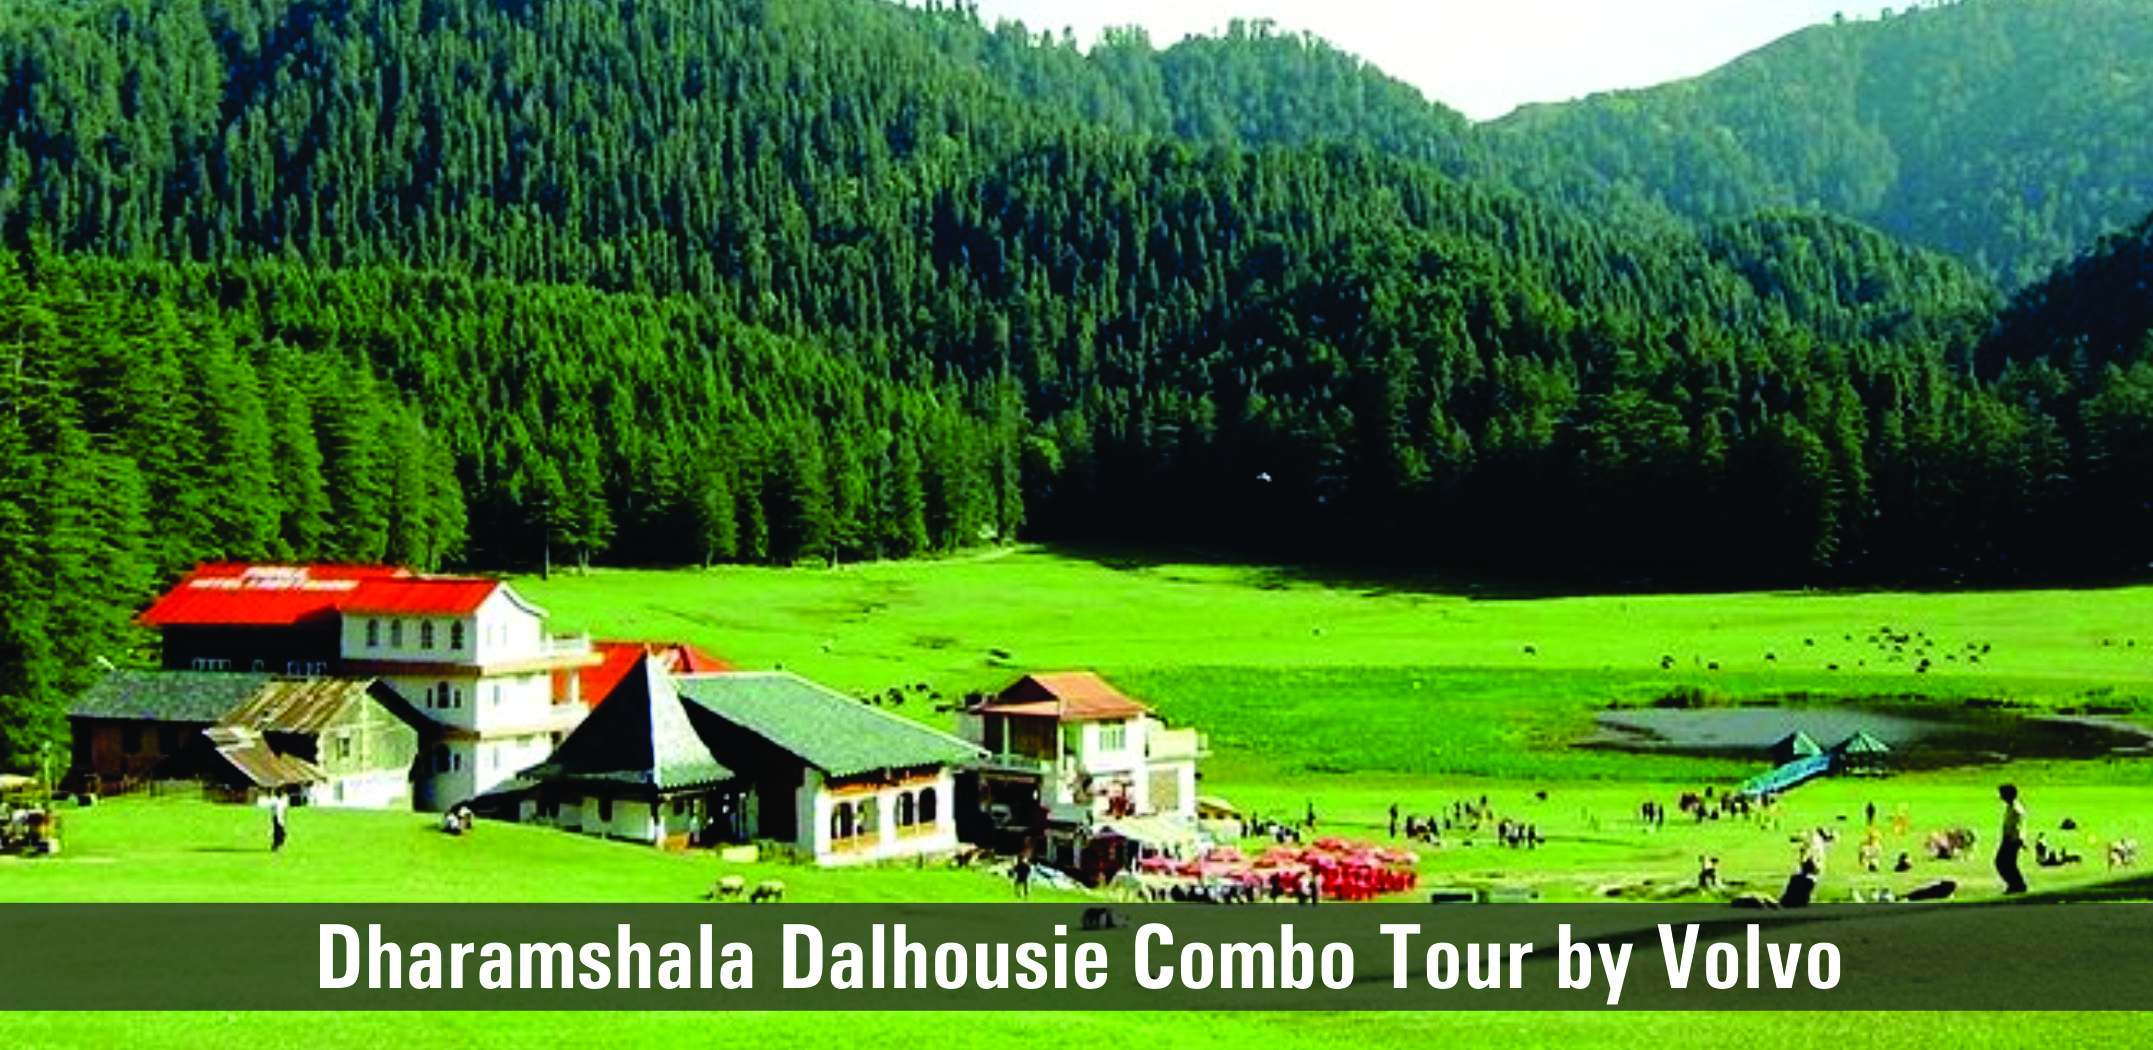 Dharamshala Mcleodganj Dalhousie tour package from delhi   dharamshala mcleodganj and dalhousie package from Chandigarh